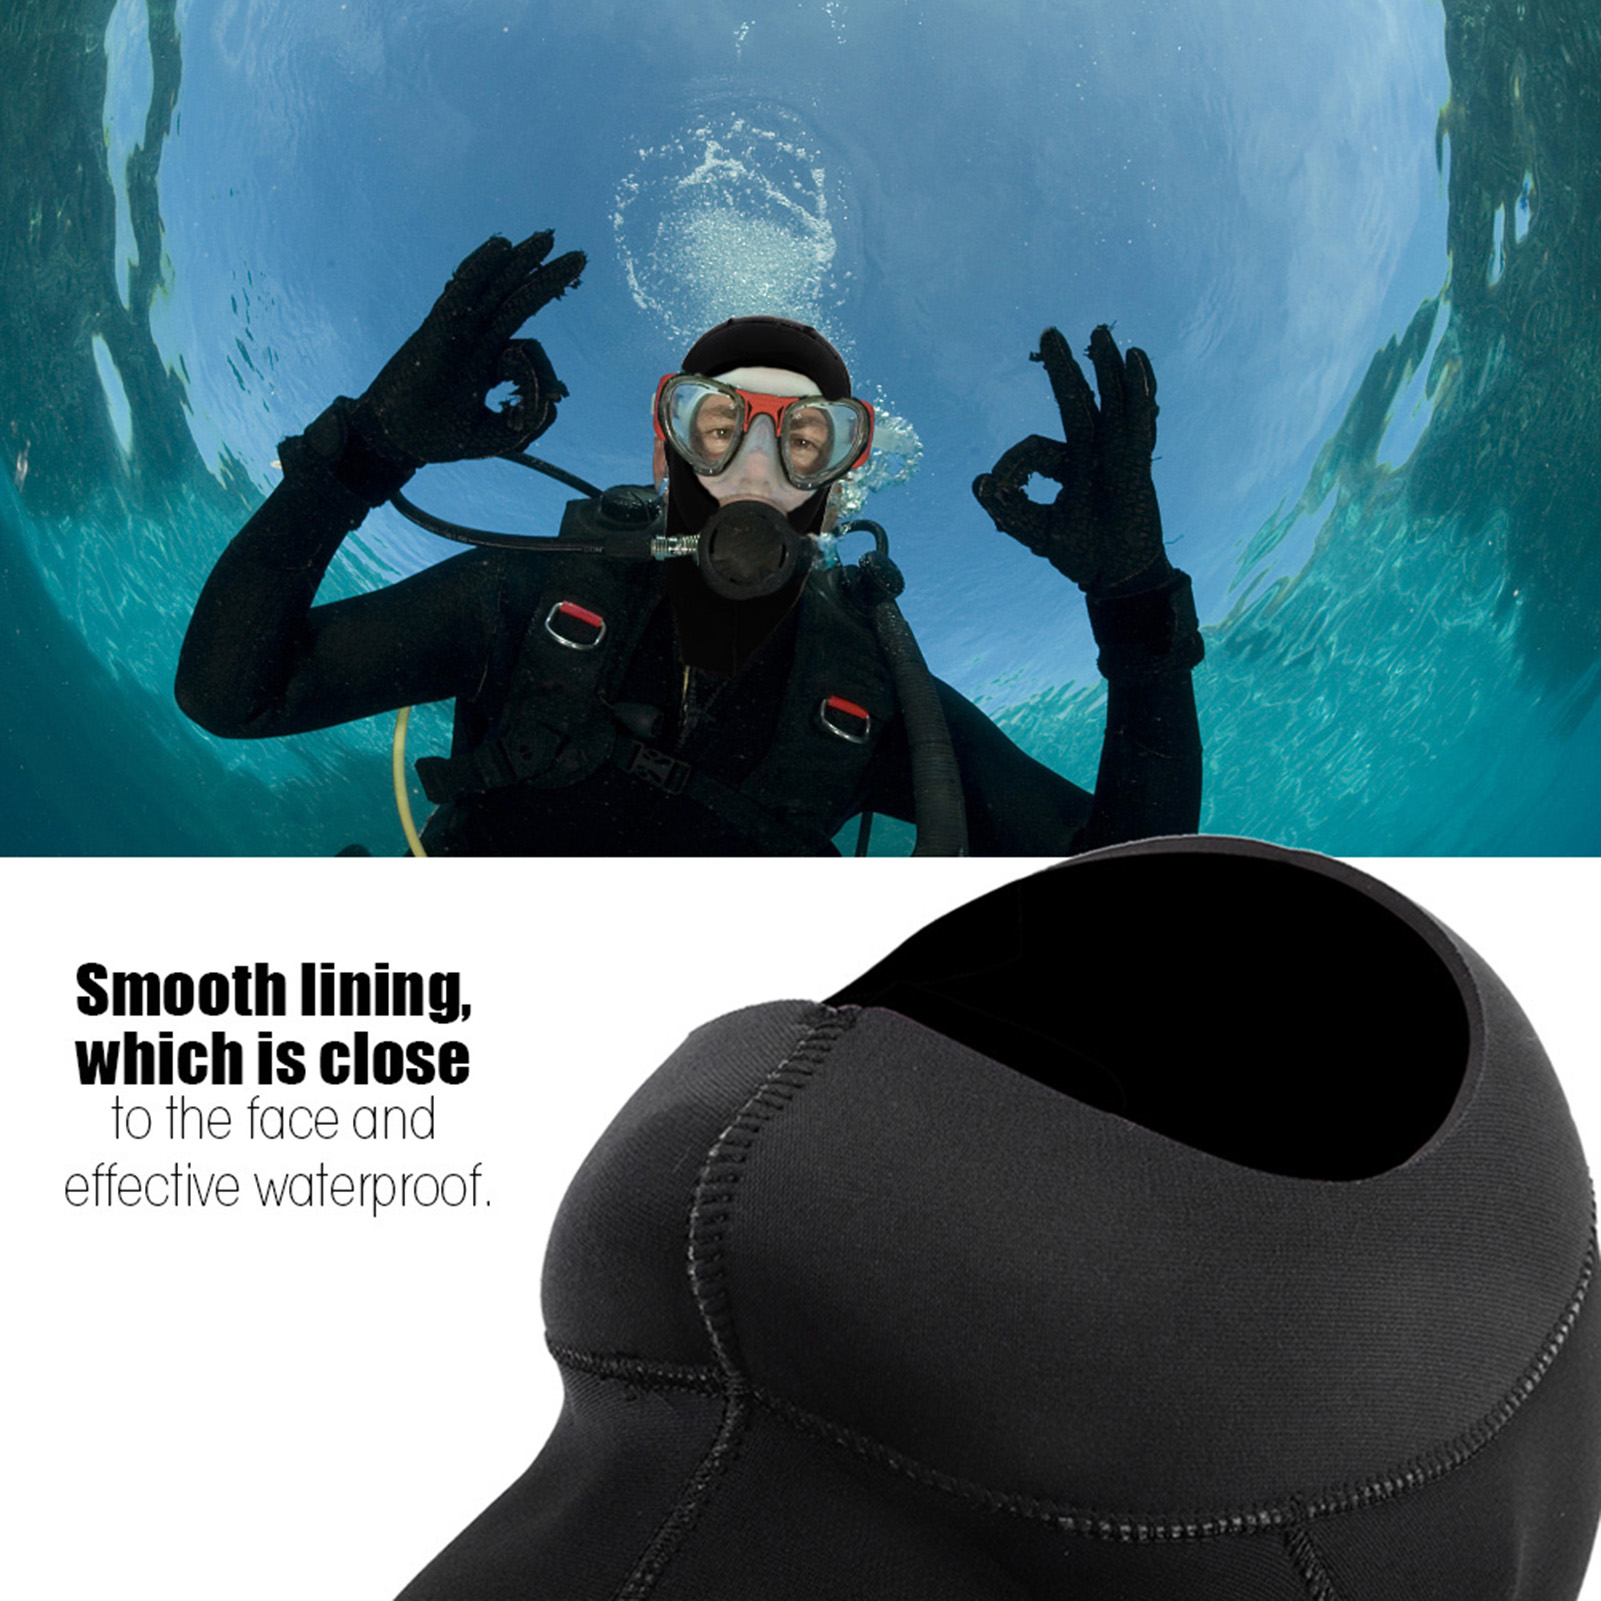 3mm-Neoprene-Scuba-Diving-Cap-Swimming-Warm-keeping-Wetsuit-Snorkeling-Hat-Hood thumbnail 14